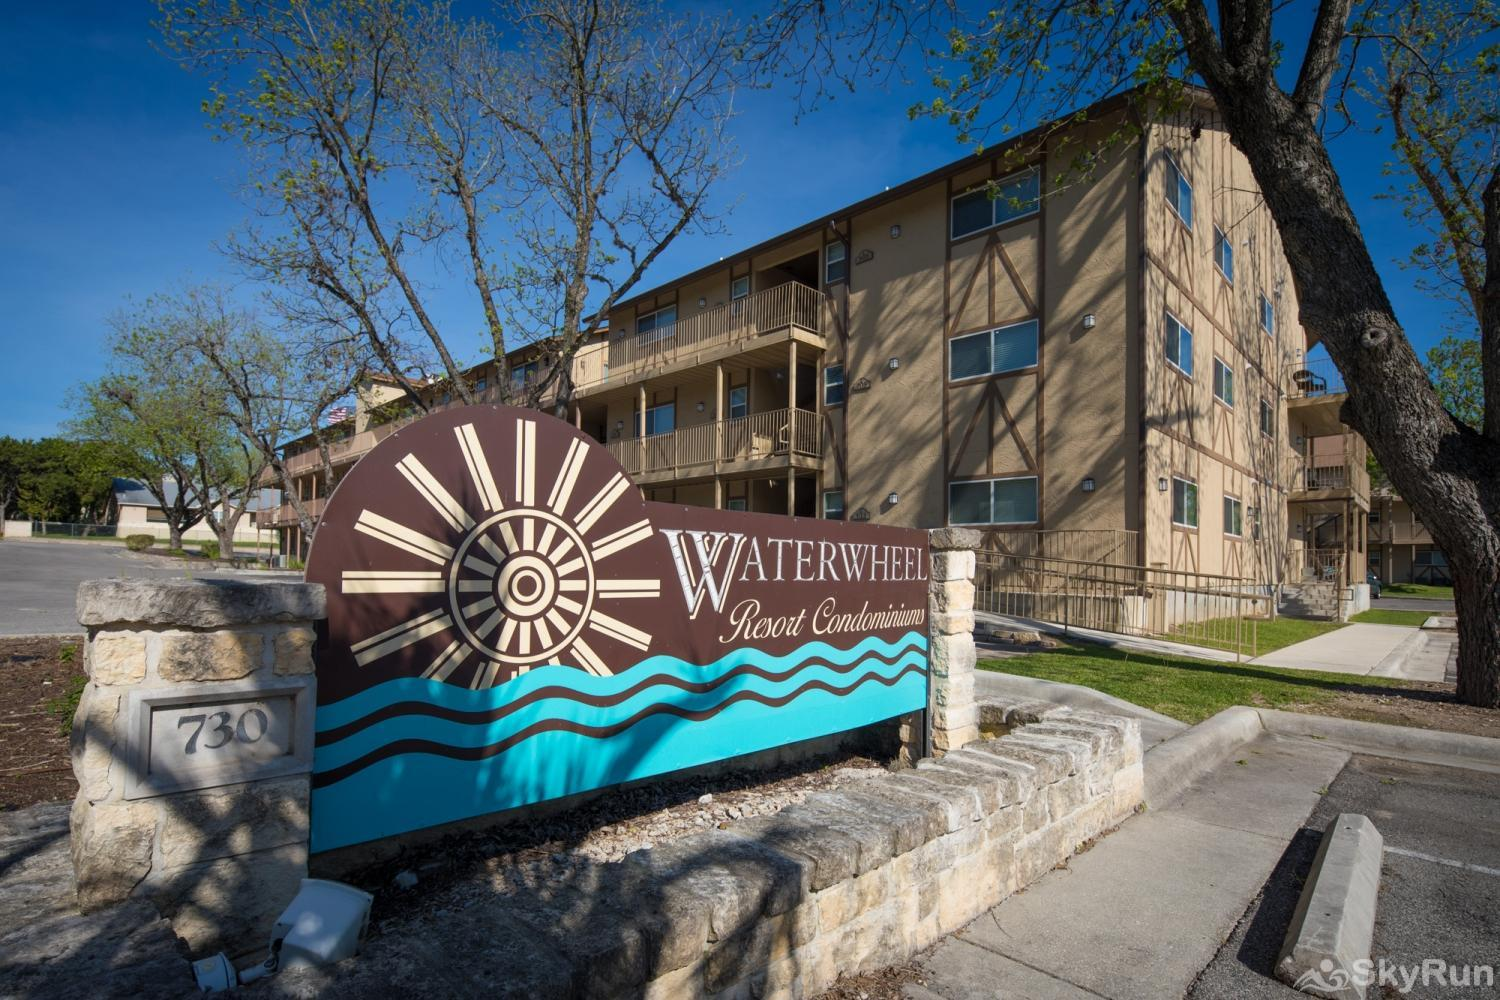 WATERWHEEL RIVER CONDO Welcome to Waterwheel Resort Condos